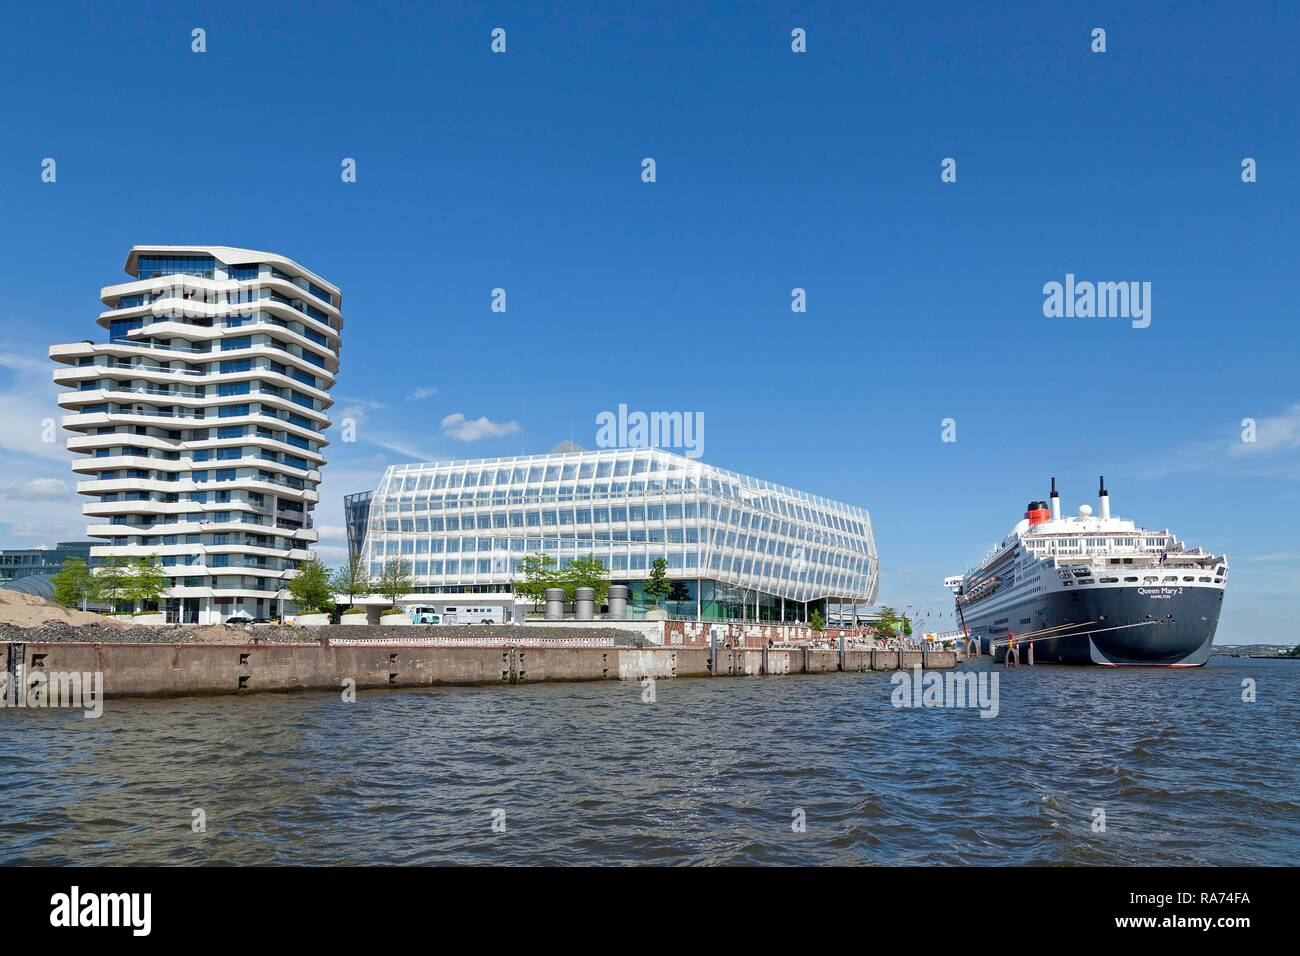 Marco Polo Tower, Unilever House, Queen Mary 2, HafenCity, Hamburg, Germany - Stock Image